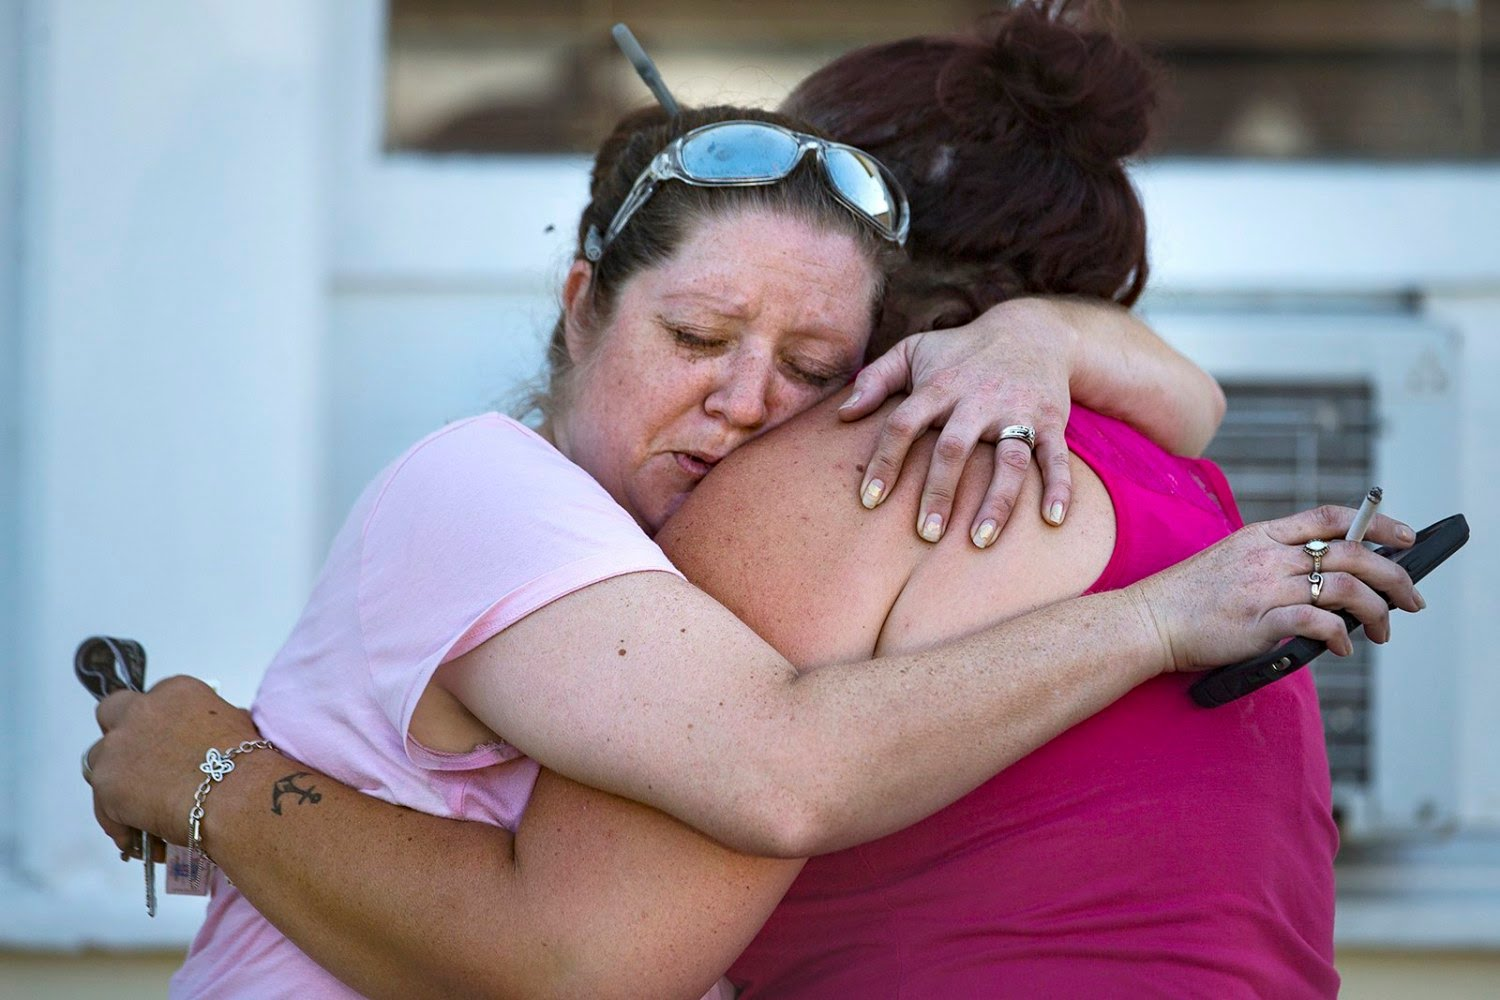 Image: Carrie Matula embraces a woman after a fatal shooting at the First Baptist Church in Sutherland Springs